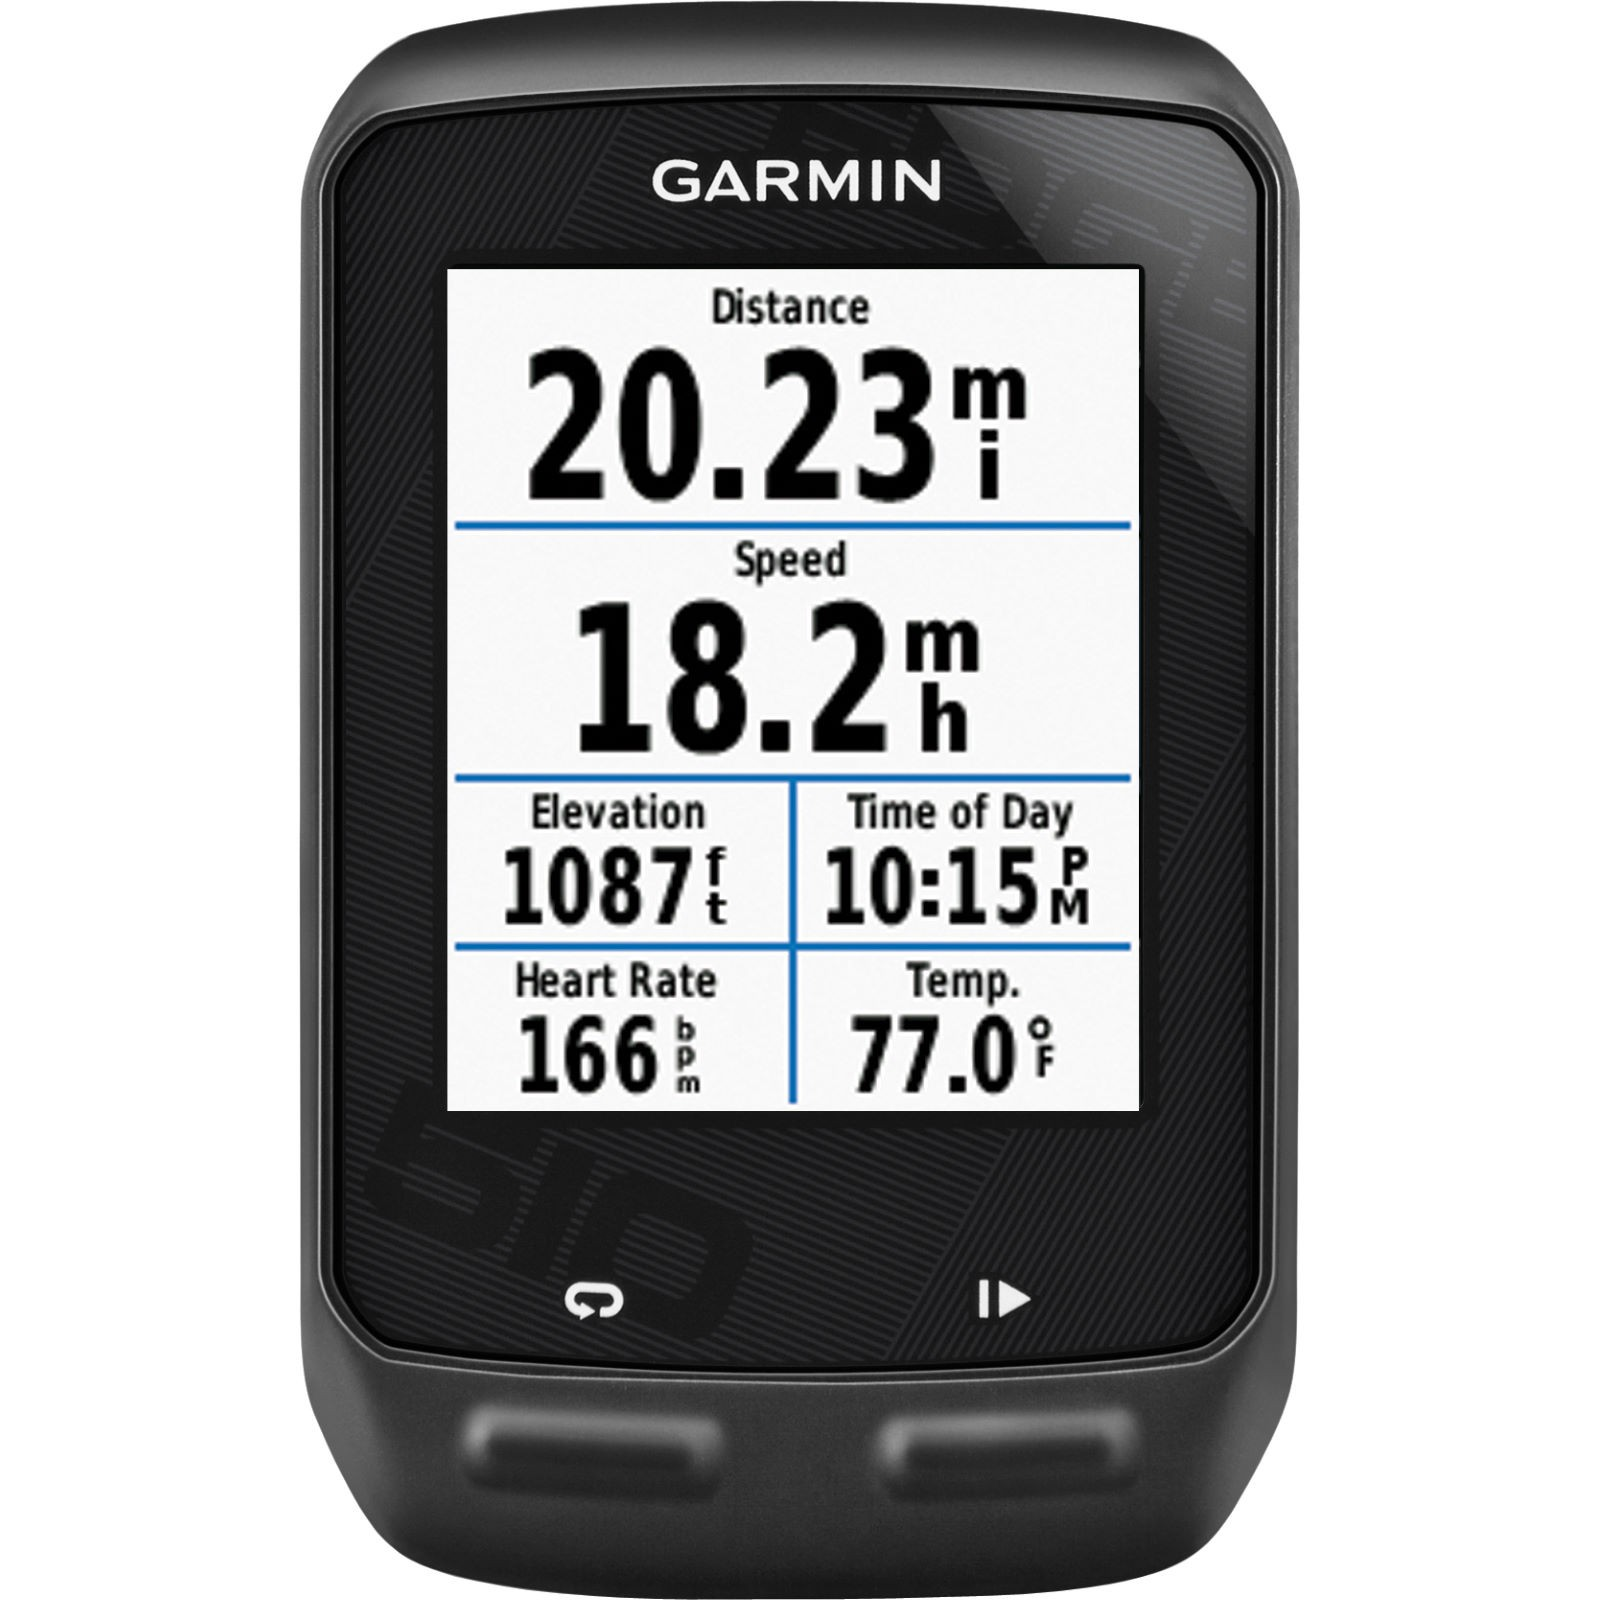 Why your Garmin speed and distance don't match Zwift's